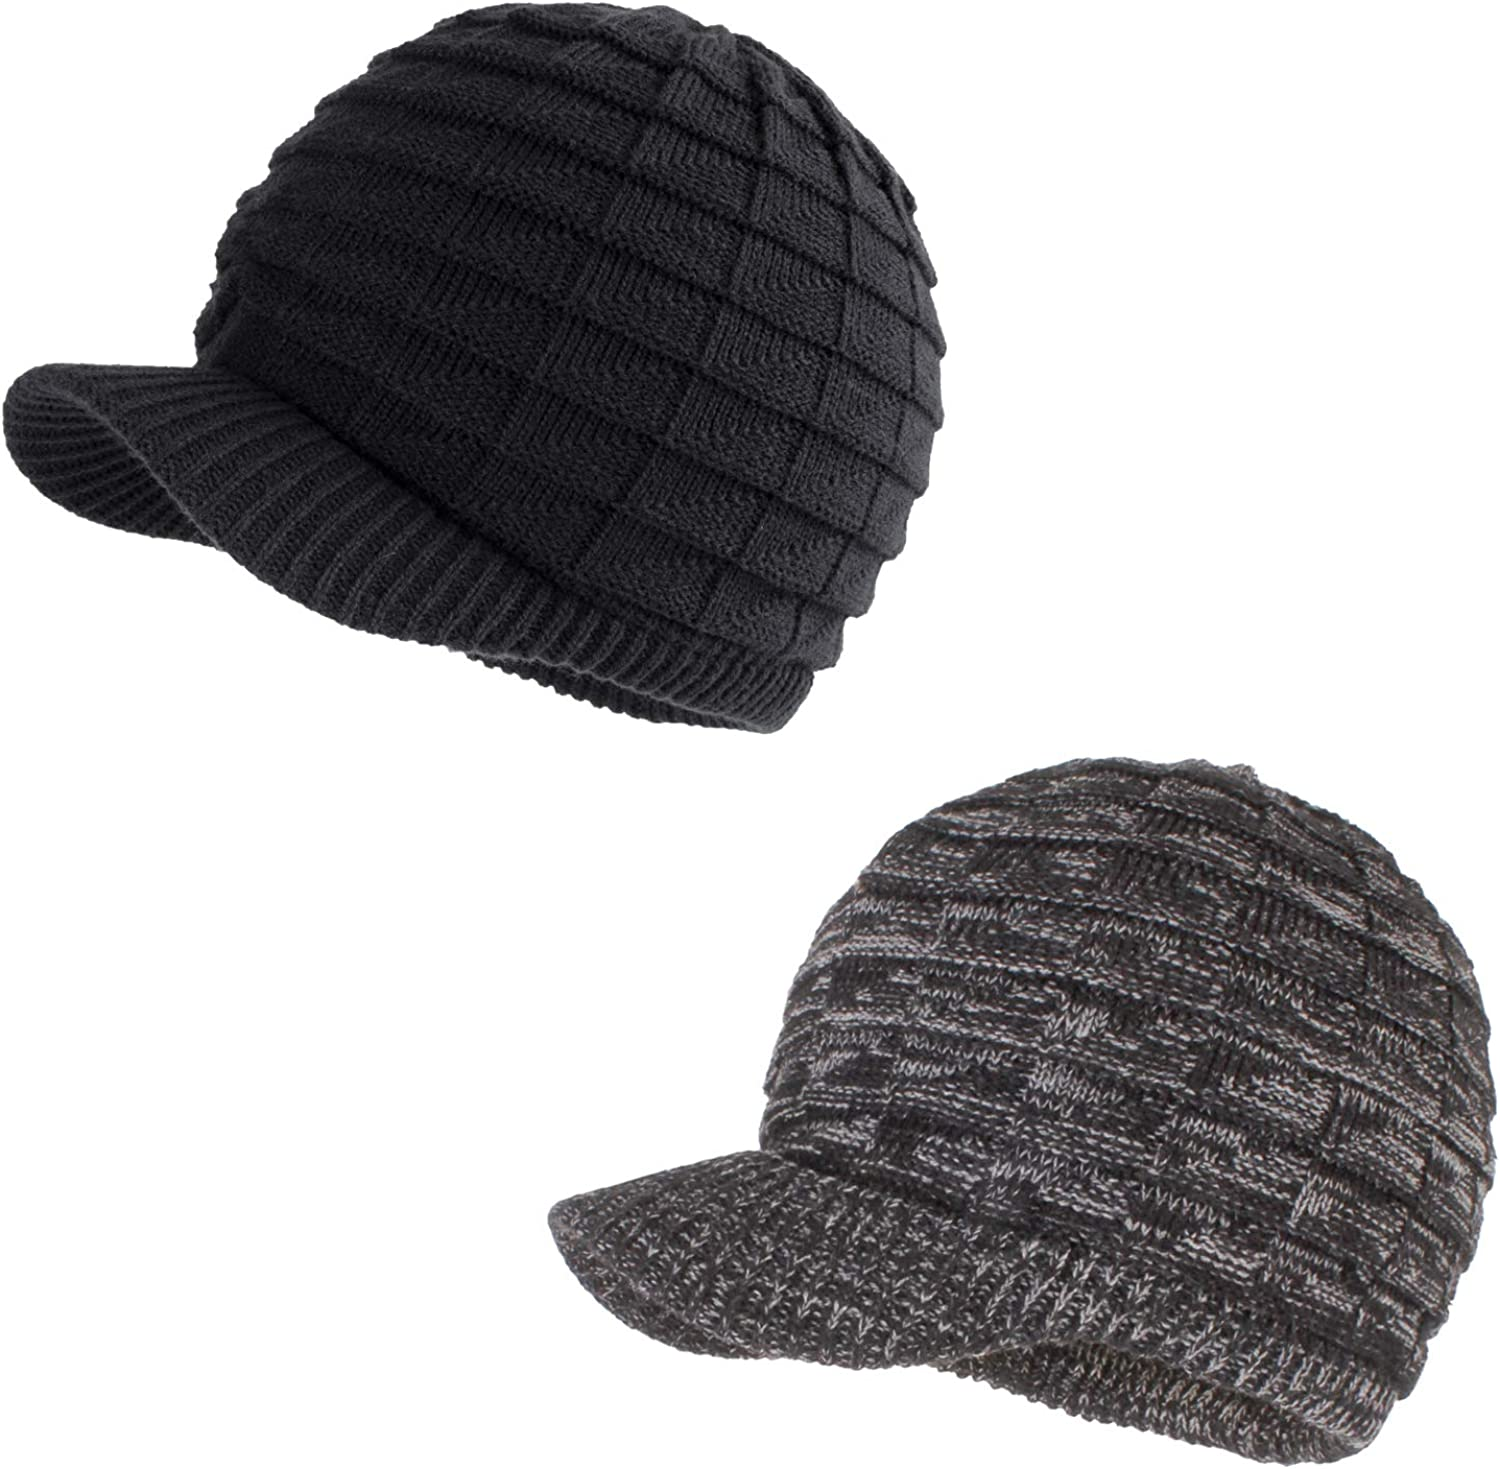 Tulsa Mall Unisex Winter Hats with Visor Warm outlet ski Knitted hat Stylish f